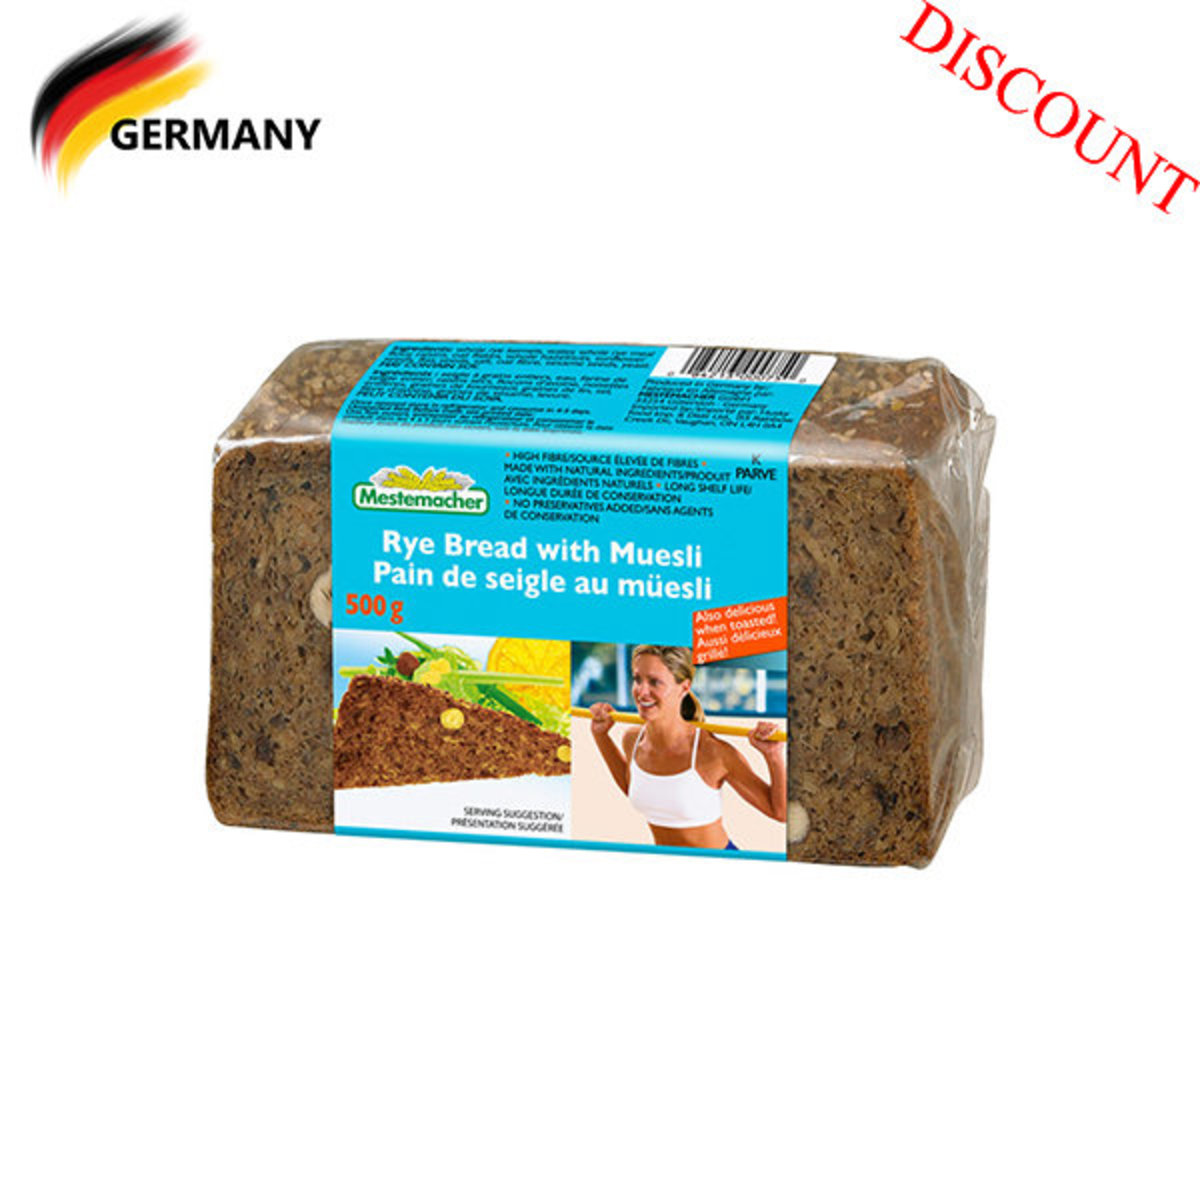 Rye Bread with Muesli 500G (best before date: 01/06/2020)